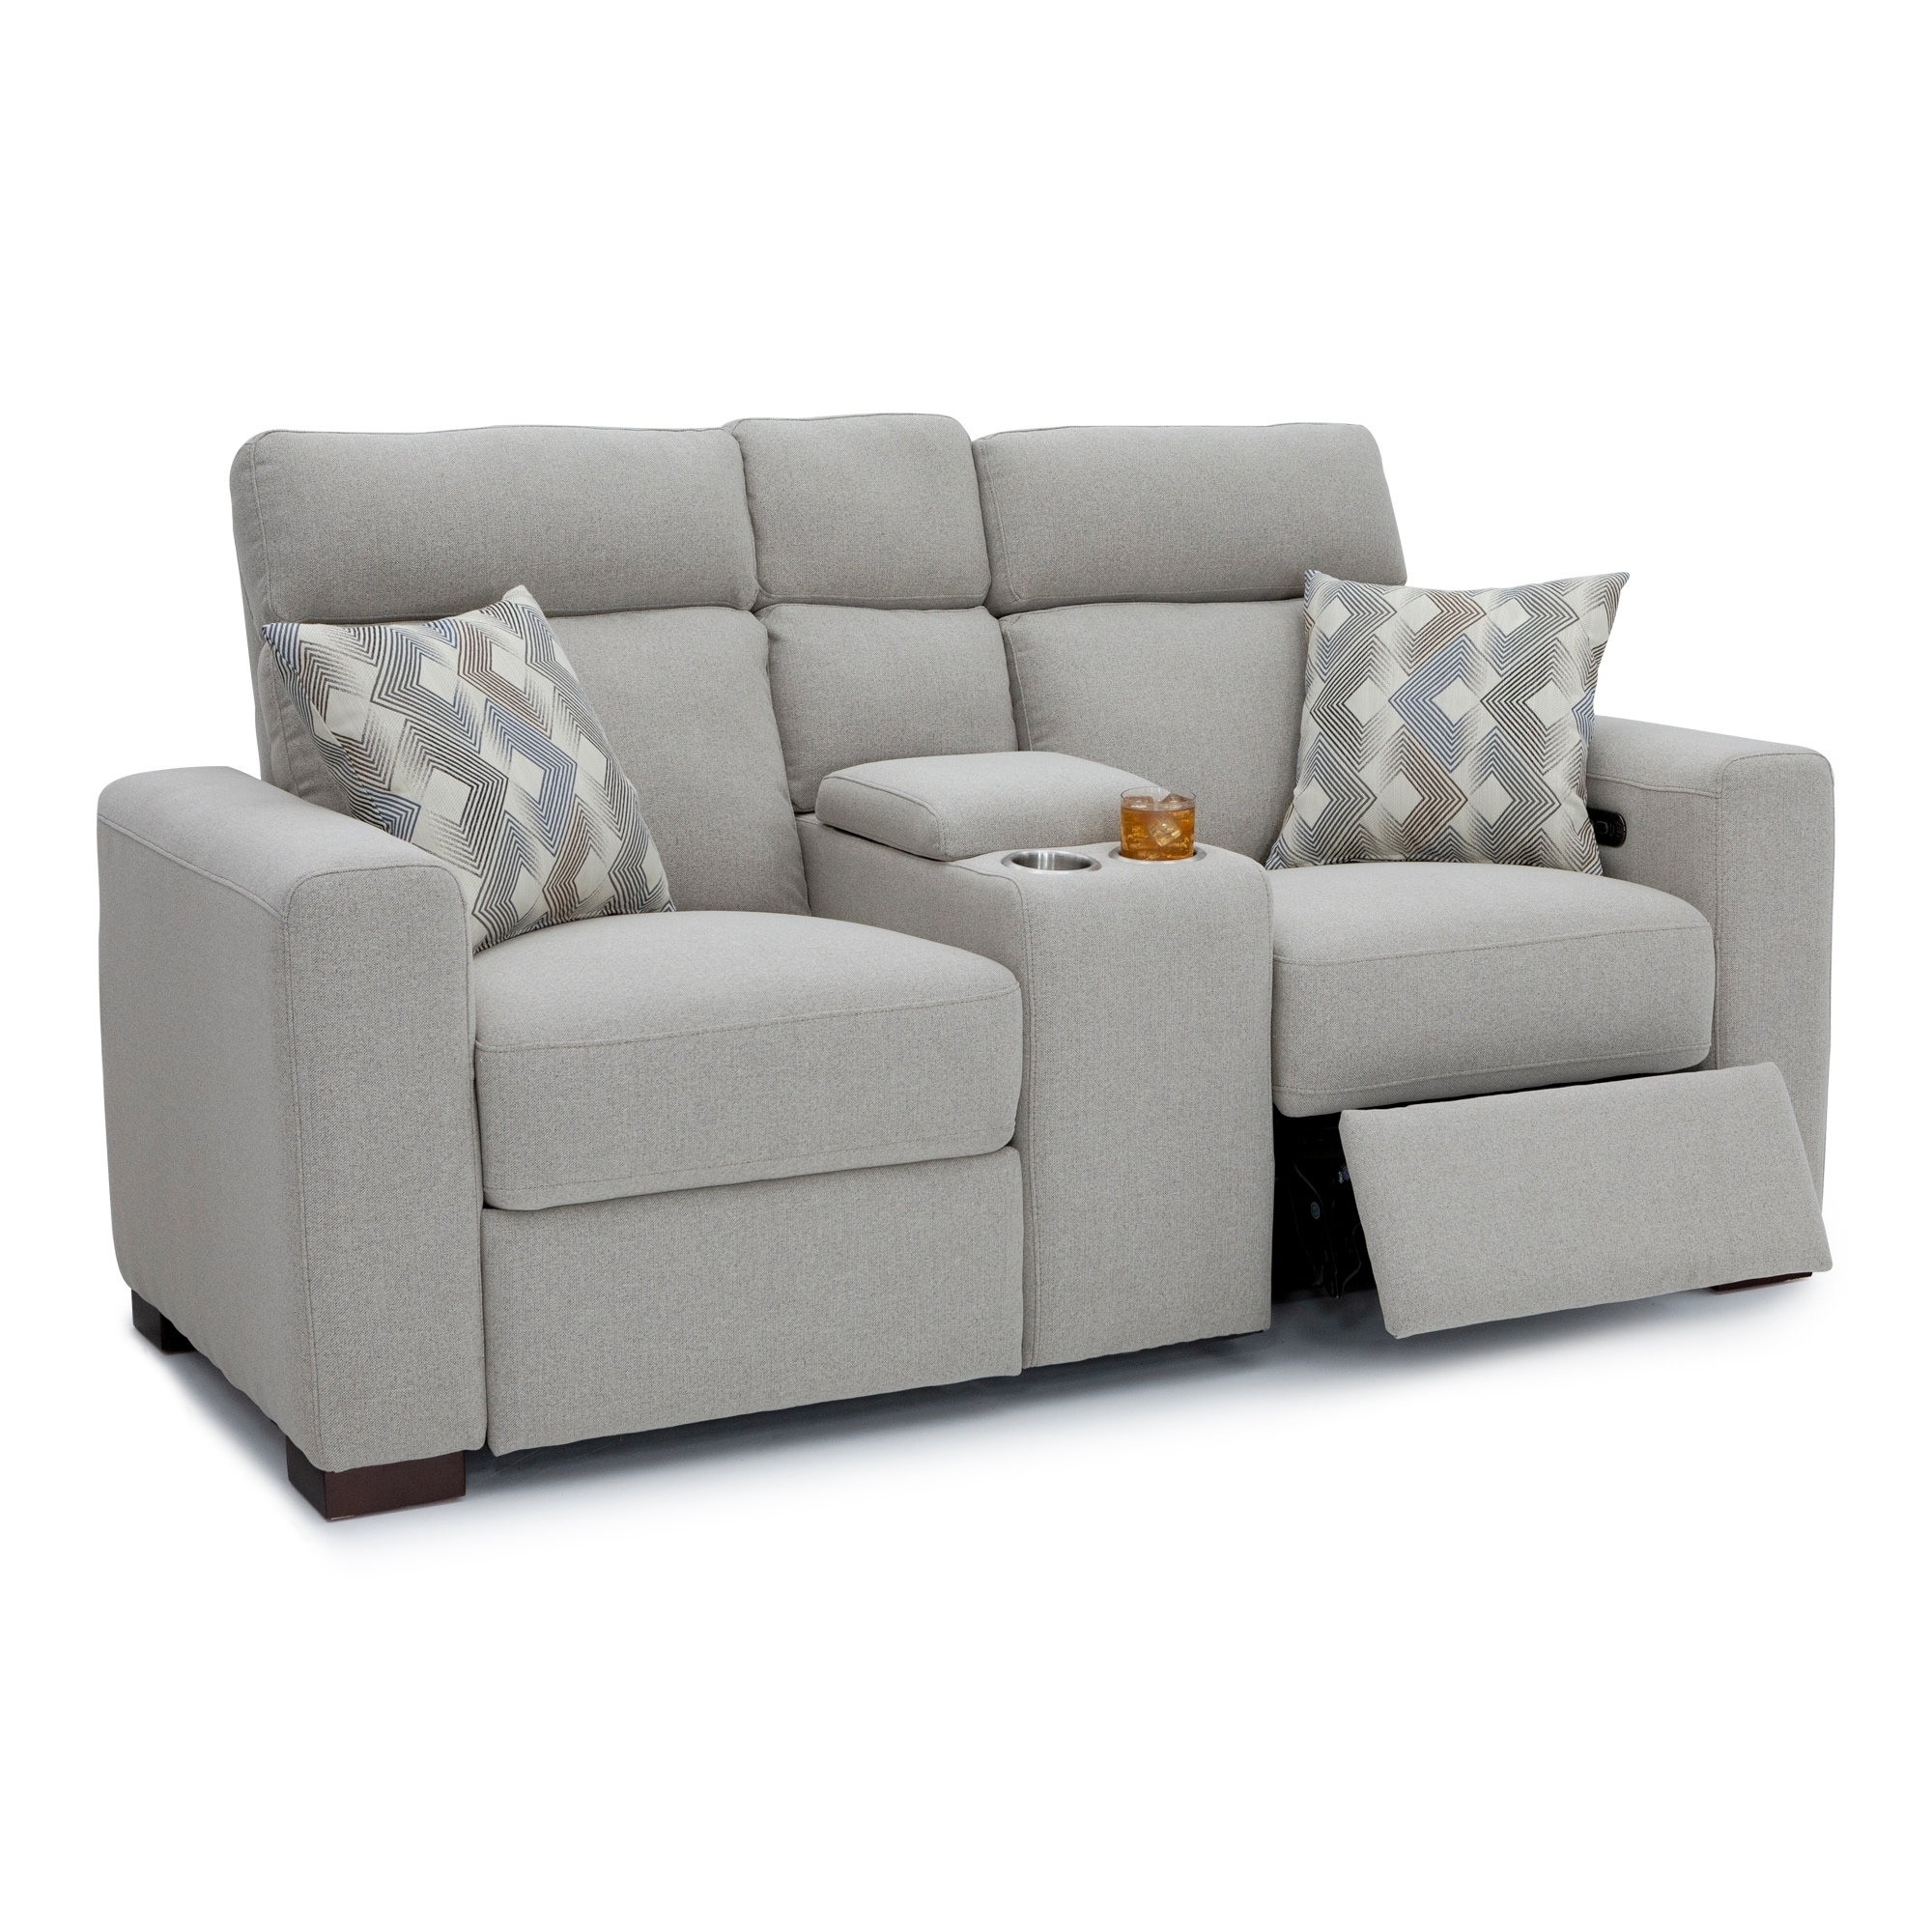 Seatcraft Capital Home Theater Seating Fabric Recline Sofa Adjule Ed Headrest Fold Down Table Cup Holders